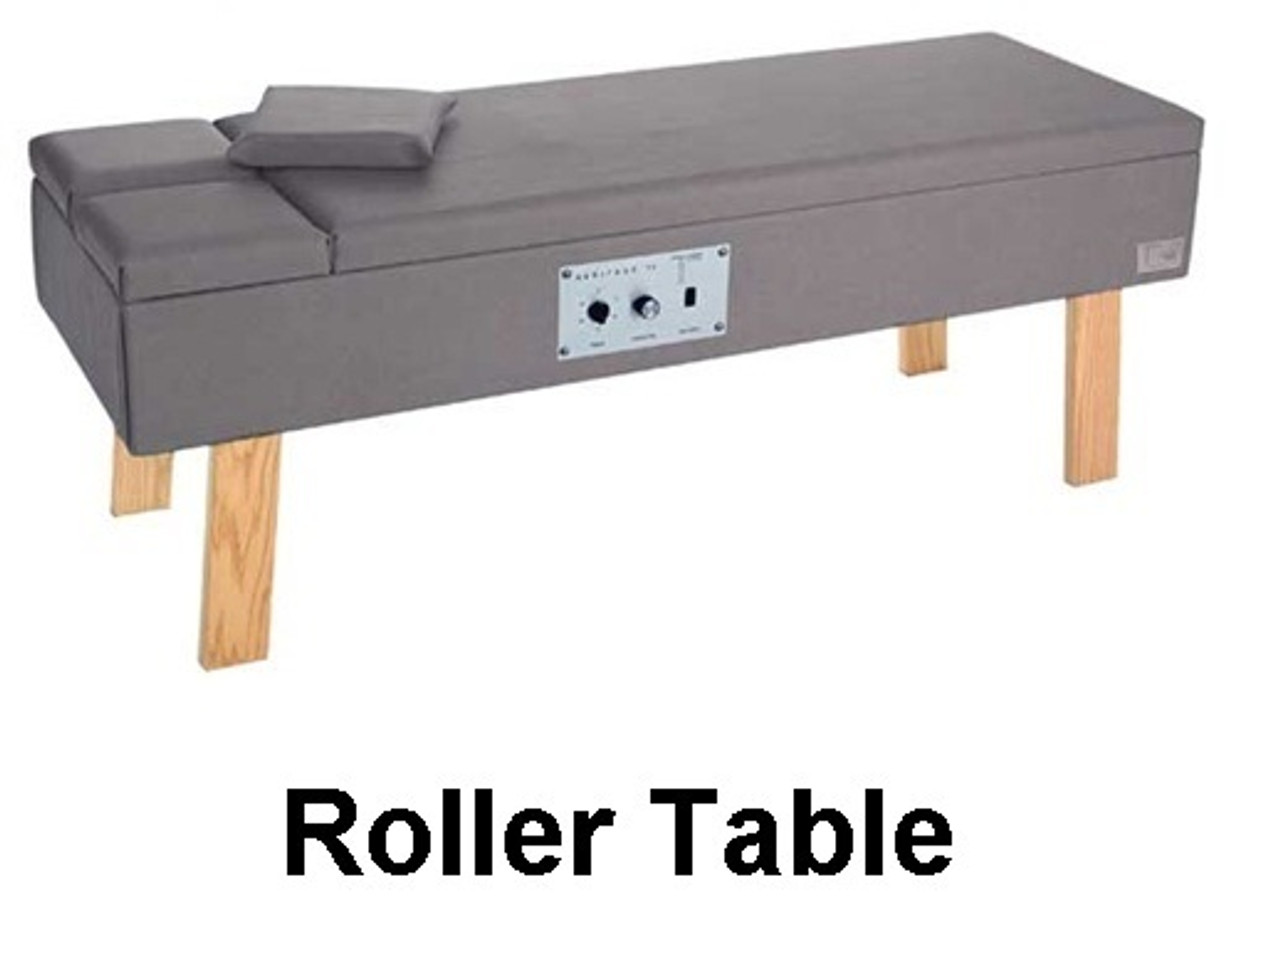 Roller Table Parts